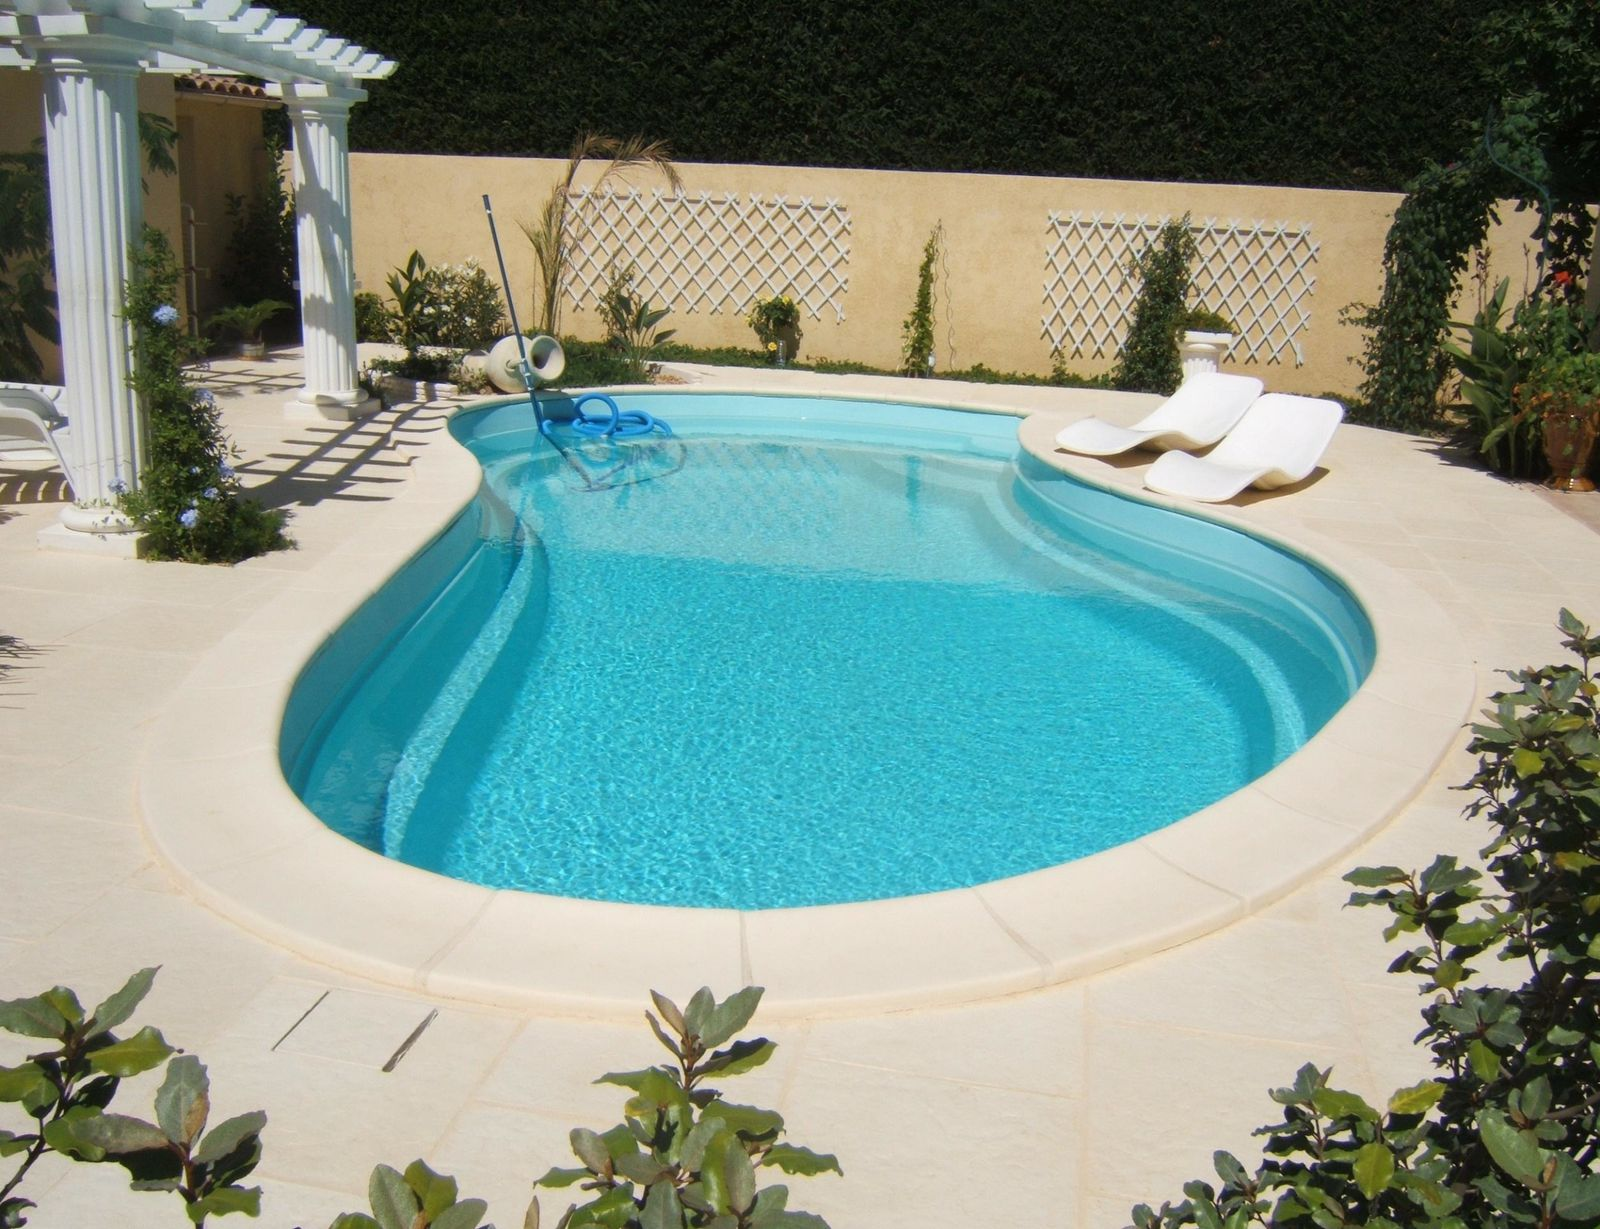 La piscine d claration pr alable de travaux le dauphinois for Autorisation pour piscine